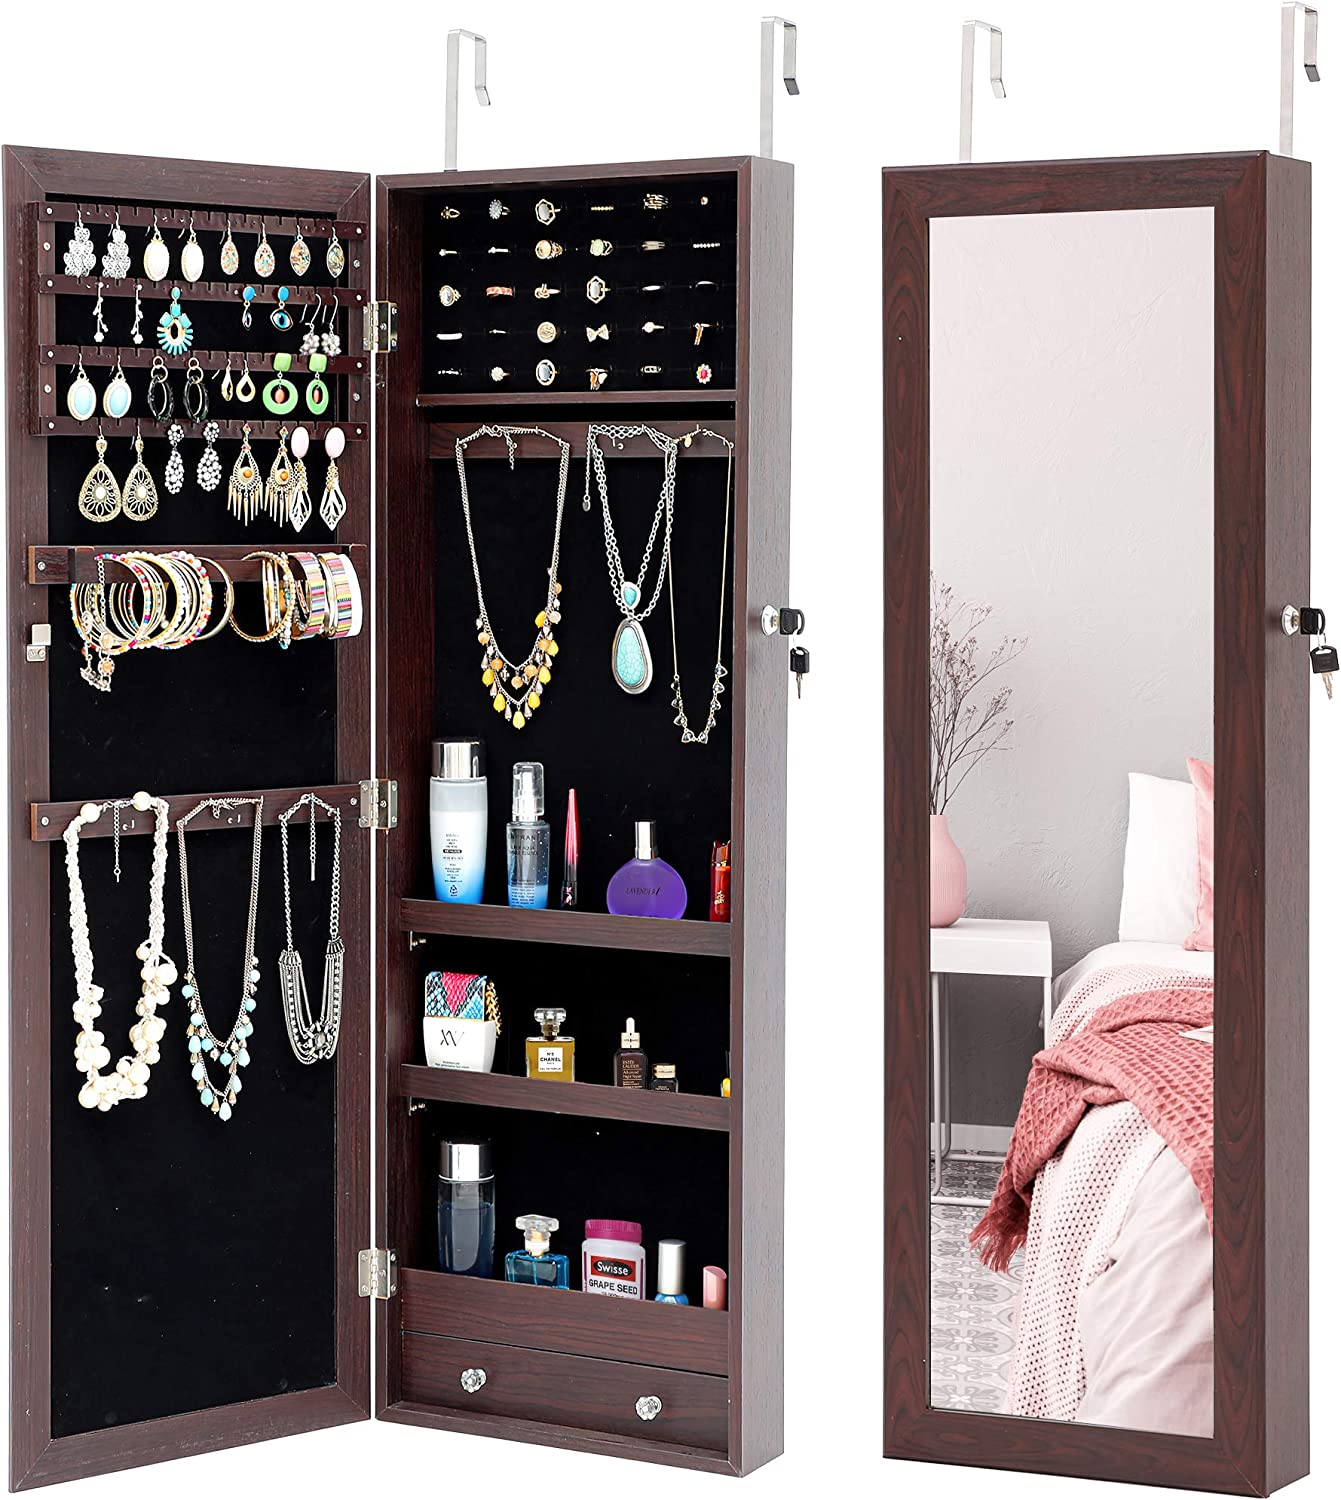 Room Decor Large Size Multifunctional Mirrored Jewelry Cabinet Full Screen Display Jewelry Armoire, 47.3